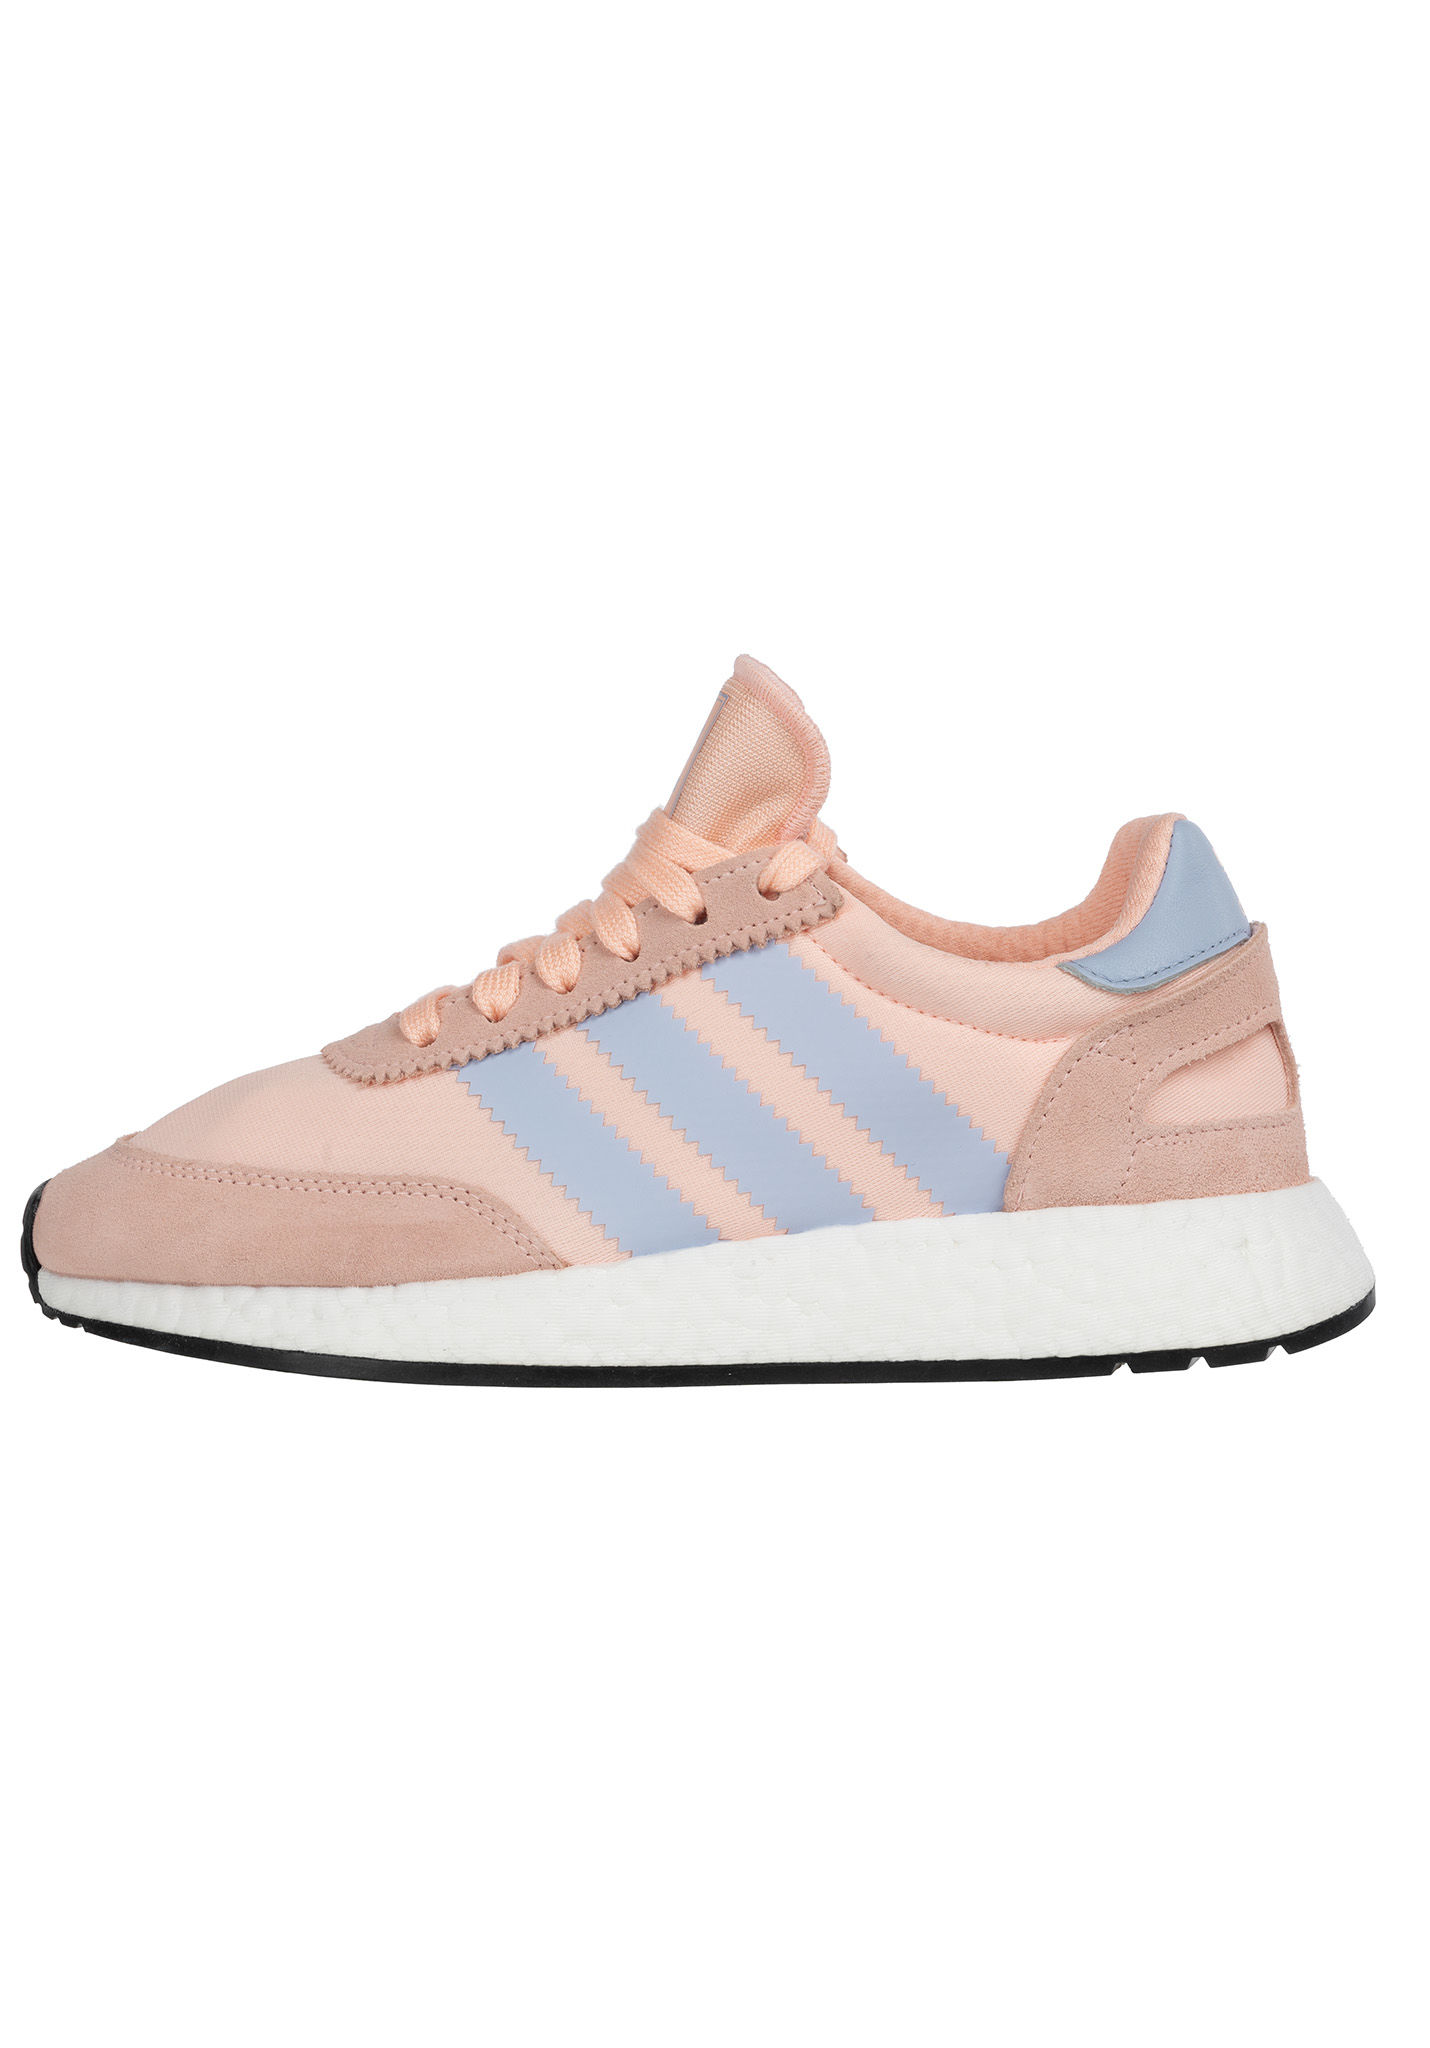 adidas Originals I-5923 - Sneaker für Damen - Orange